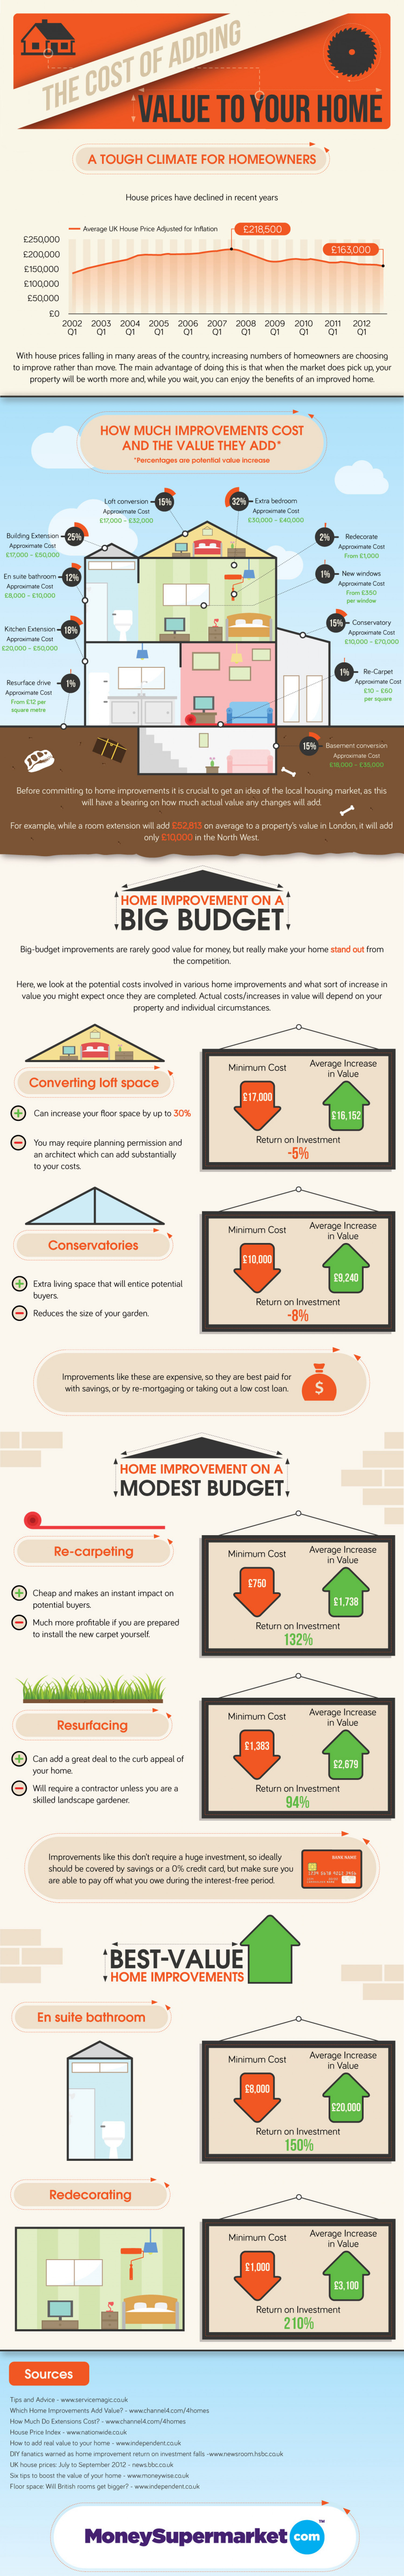 The Cost of Adding Value to your Home Infographic